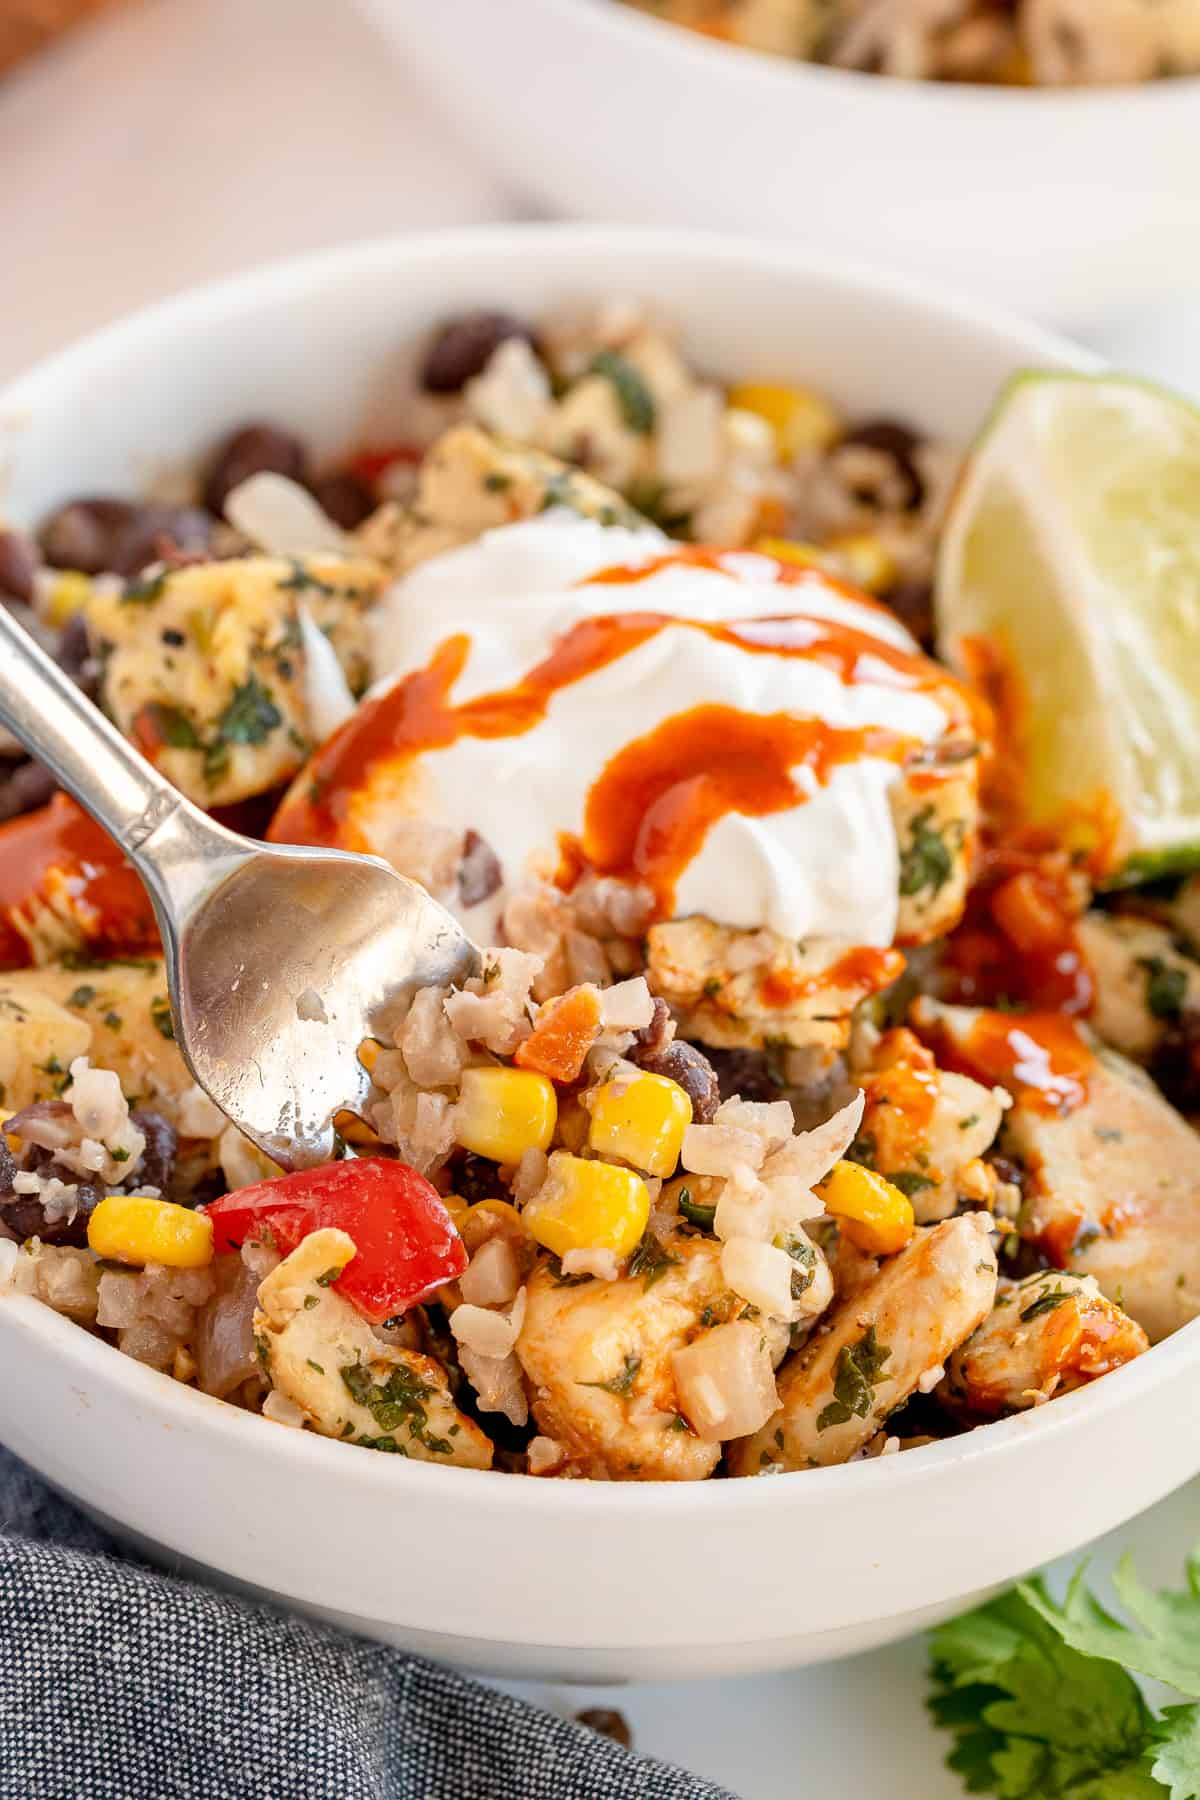 A fork digs into a Cilantro Lime Chicken Bowl topped with sour cream.